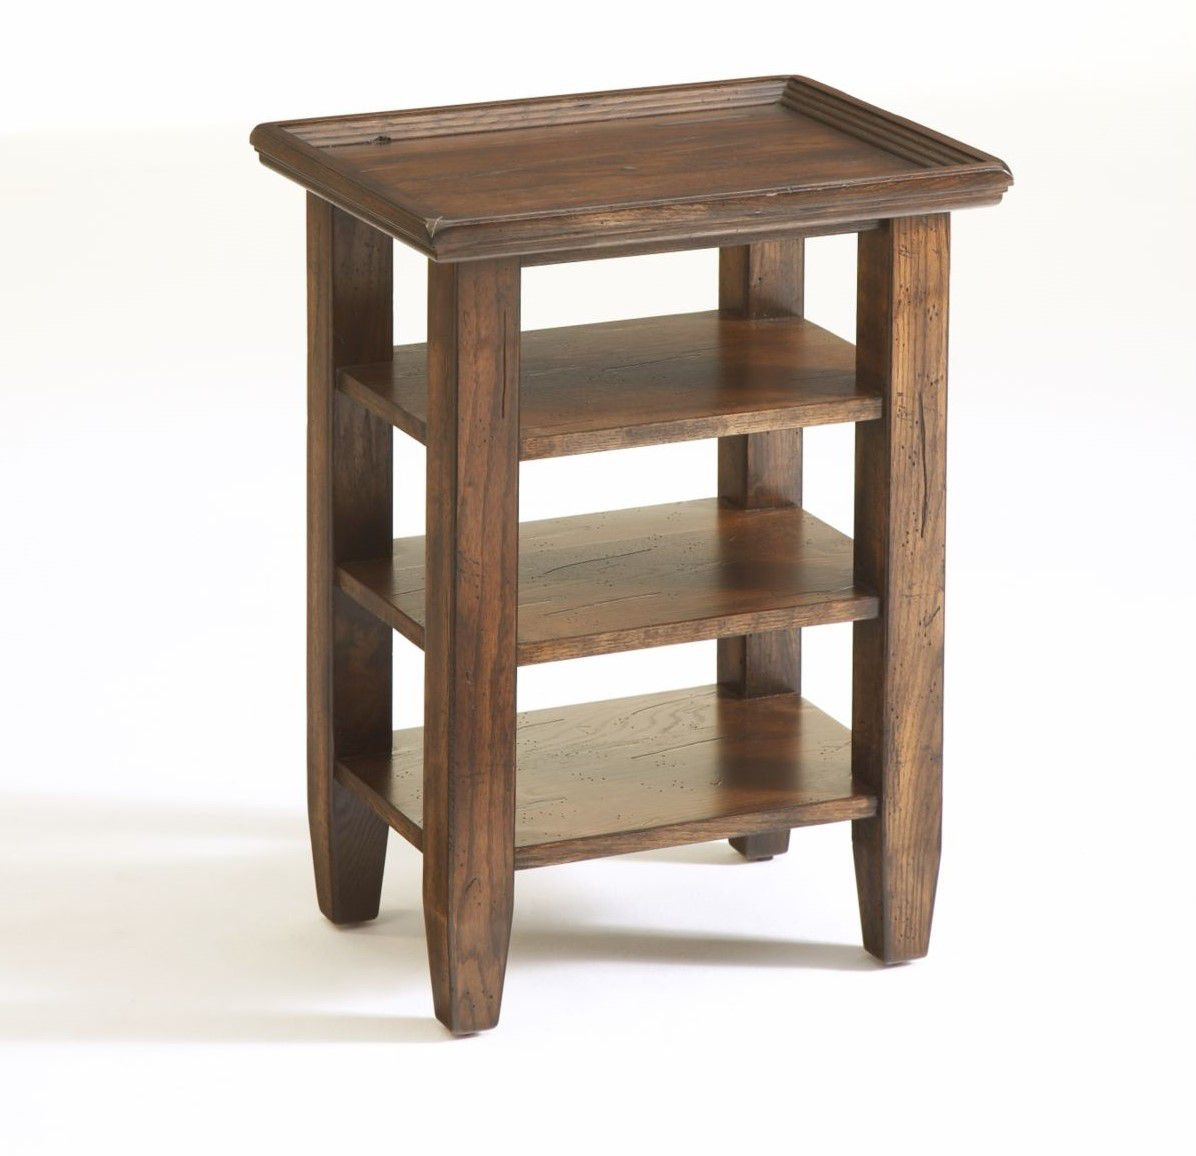 Broyhill Living Room Attic Heirlooms Accessory Table 3397 ACC TBL   Urban  Interiors At Thomasville   Bellevue And Tukwila,WA